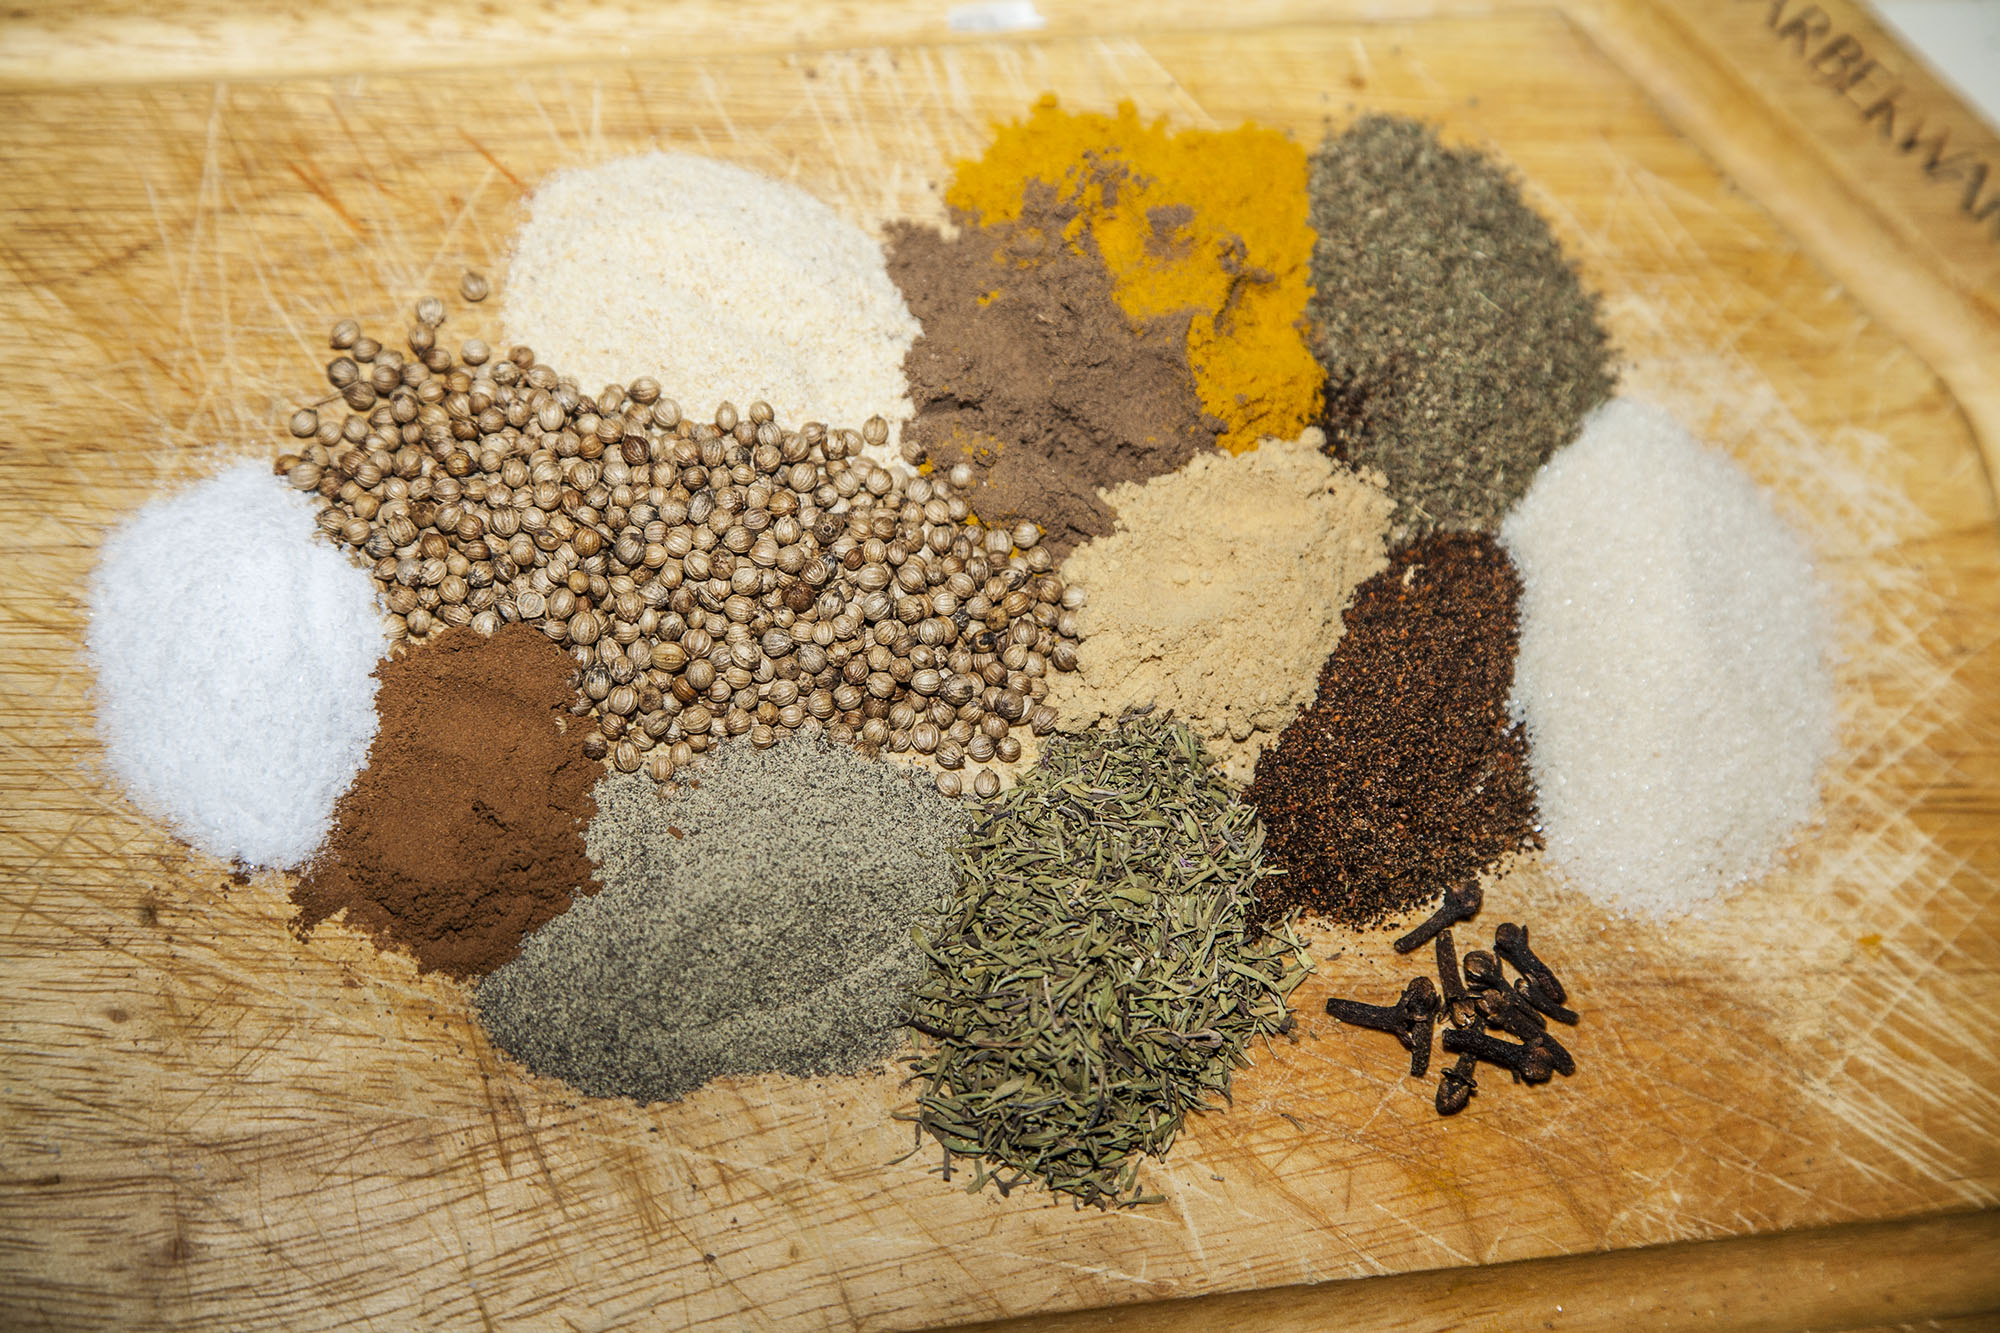 Spices - Marry Caribbean